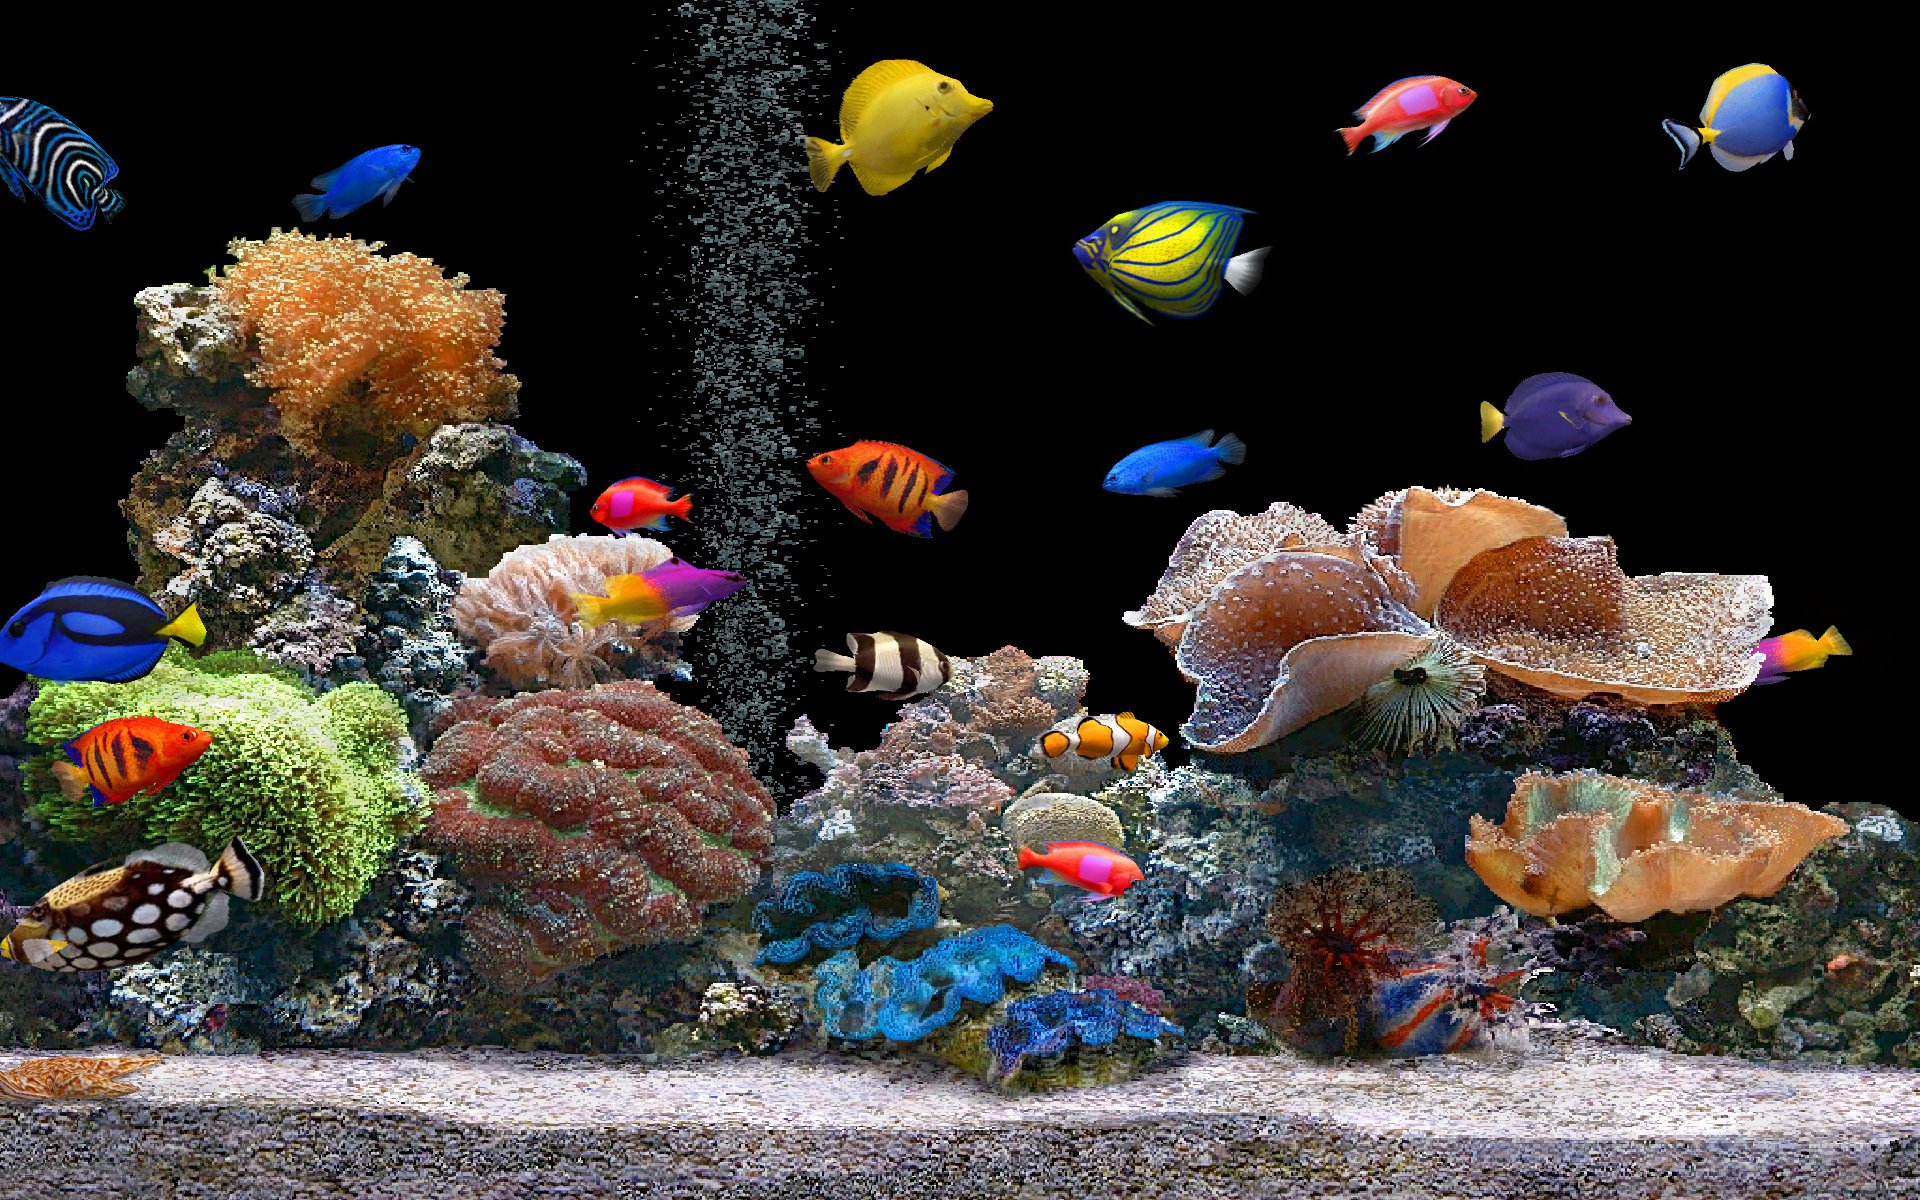 Aquarium Colorful Screensavers wallpapers HD   138274 1920x1200